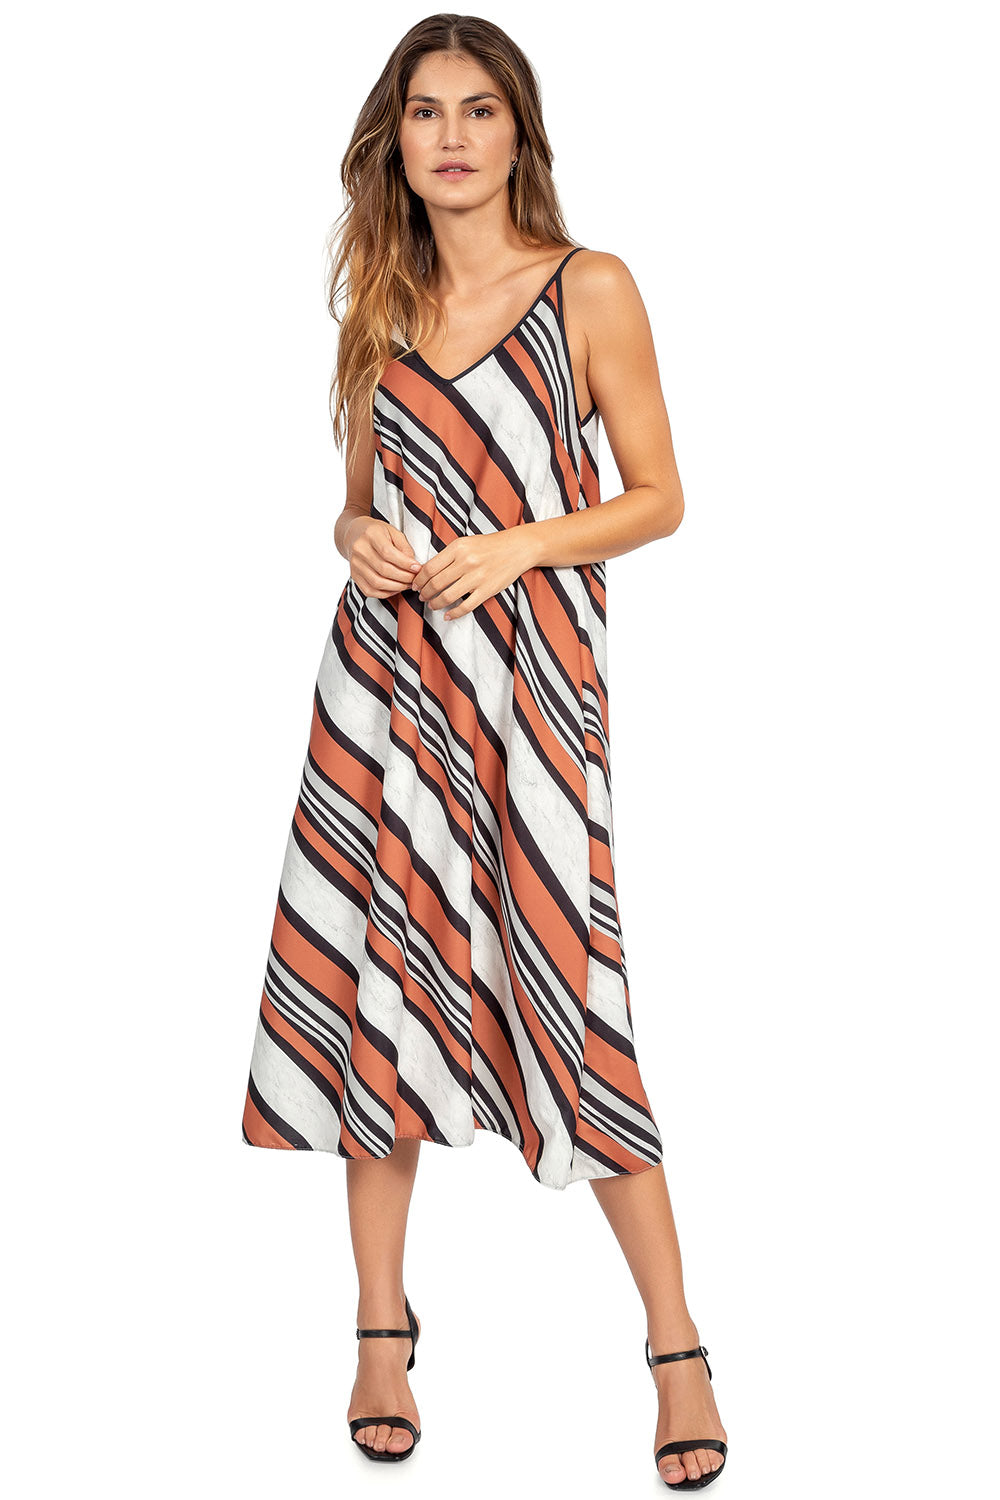 Intense Stripes Midi Dress